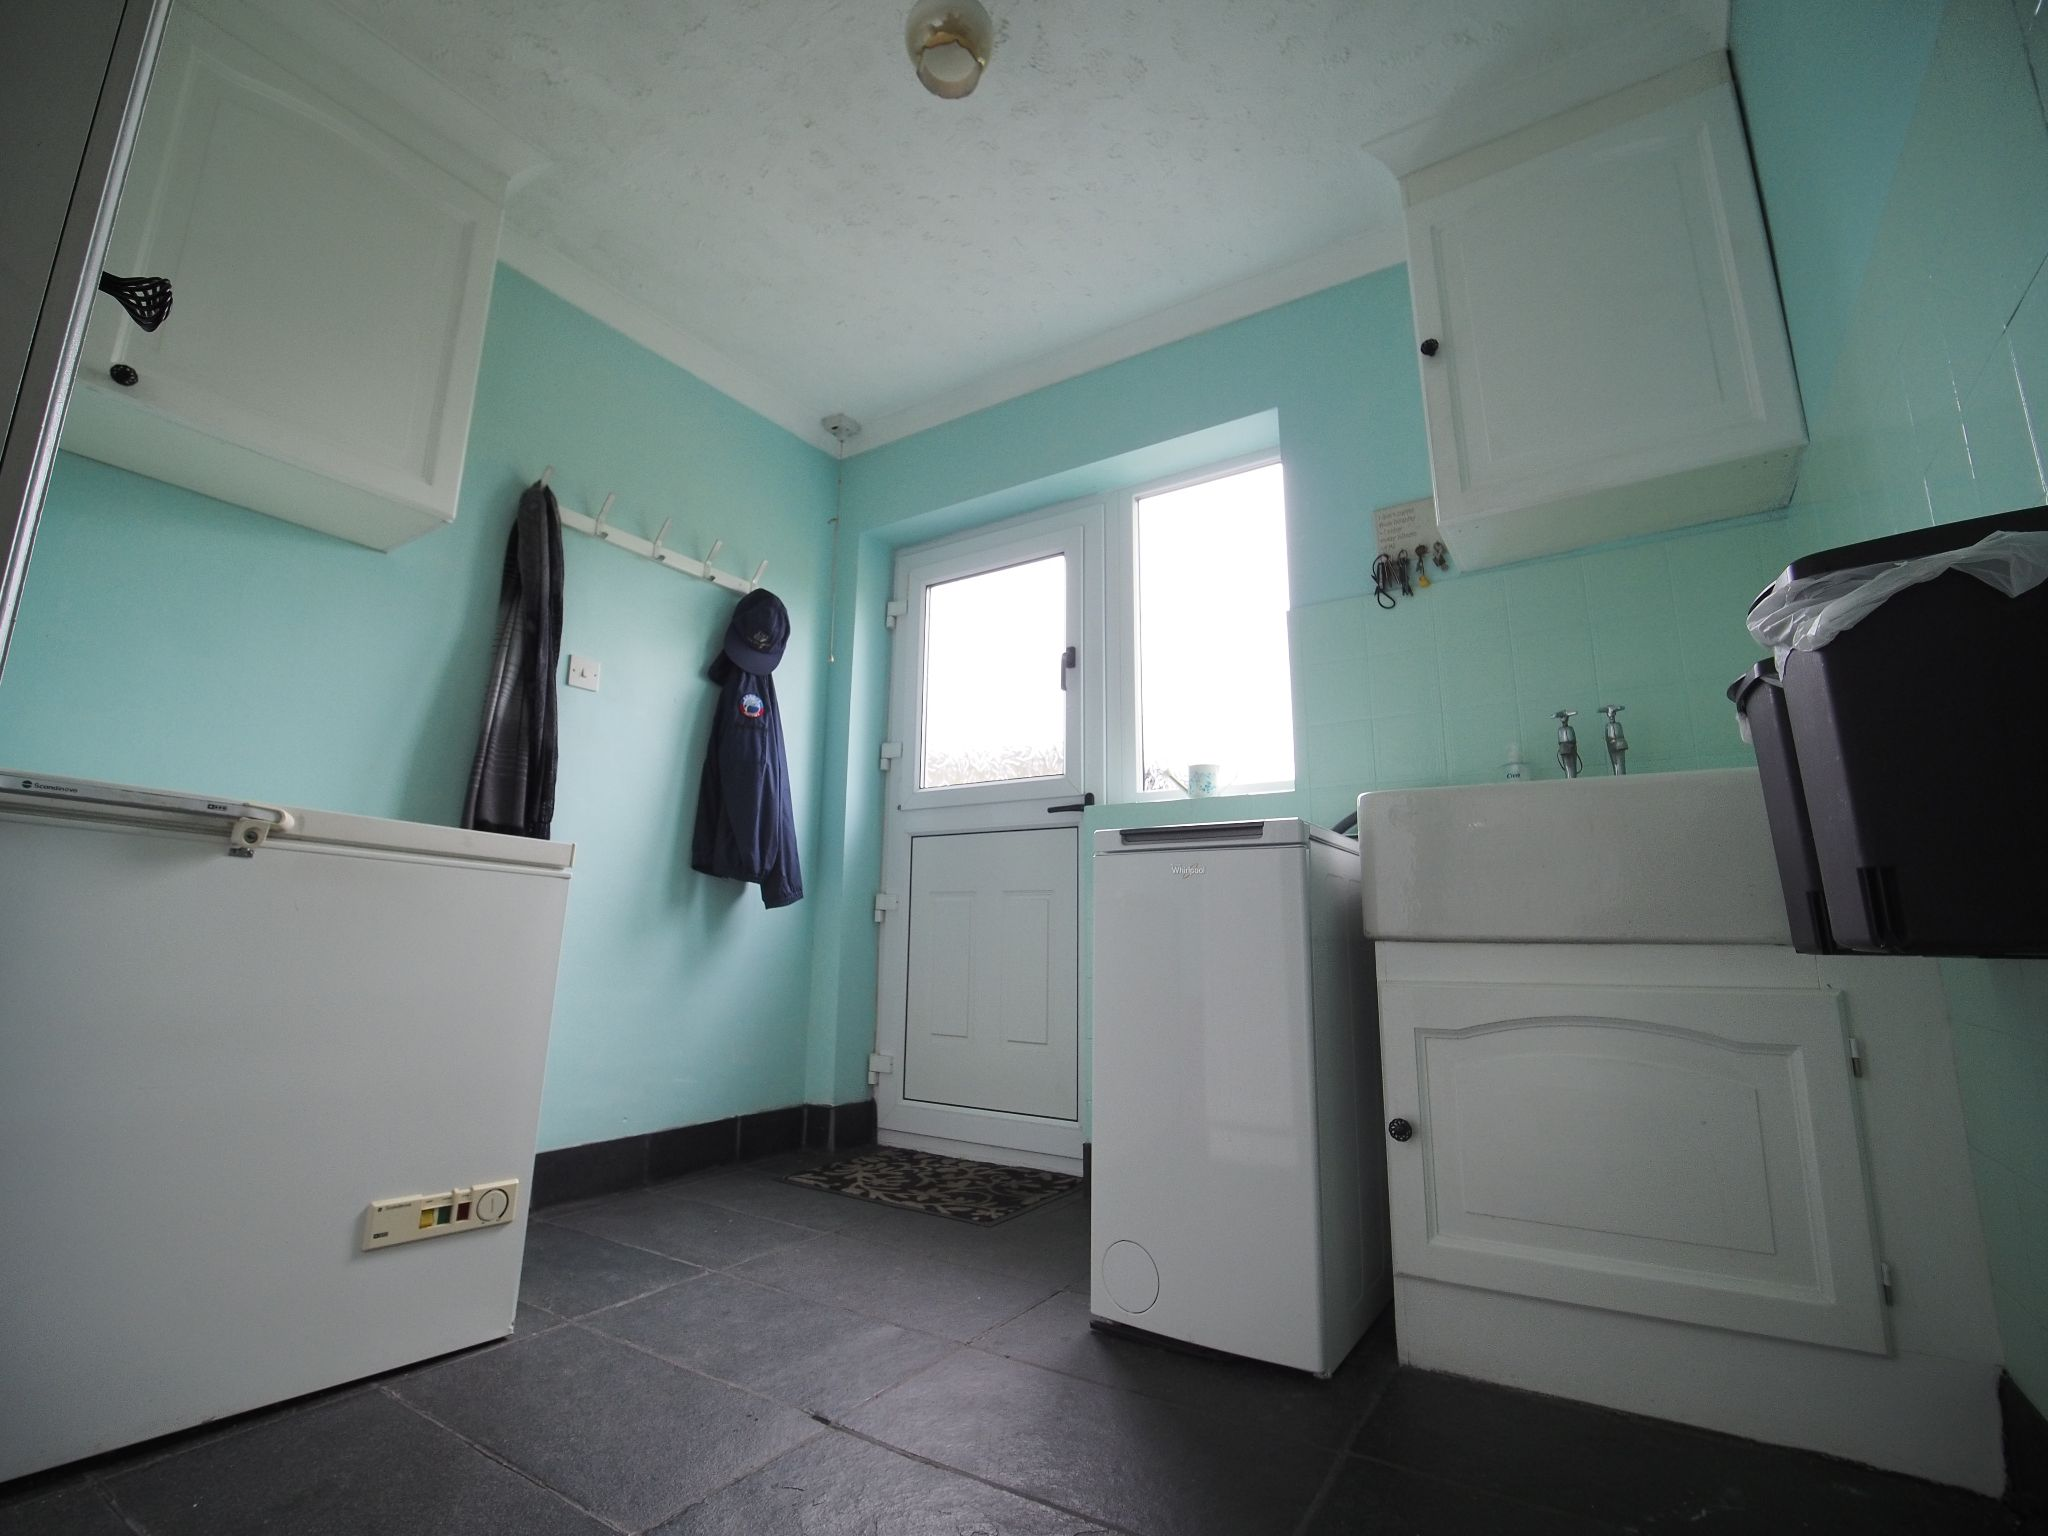 4 bedroom detached house For Sale in Willington - Utility.